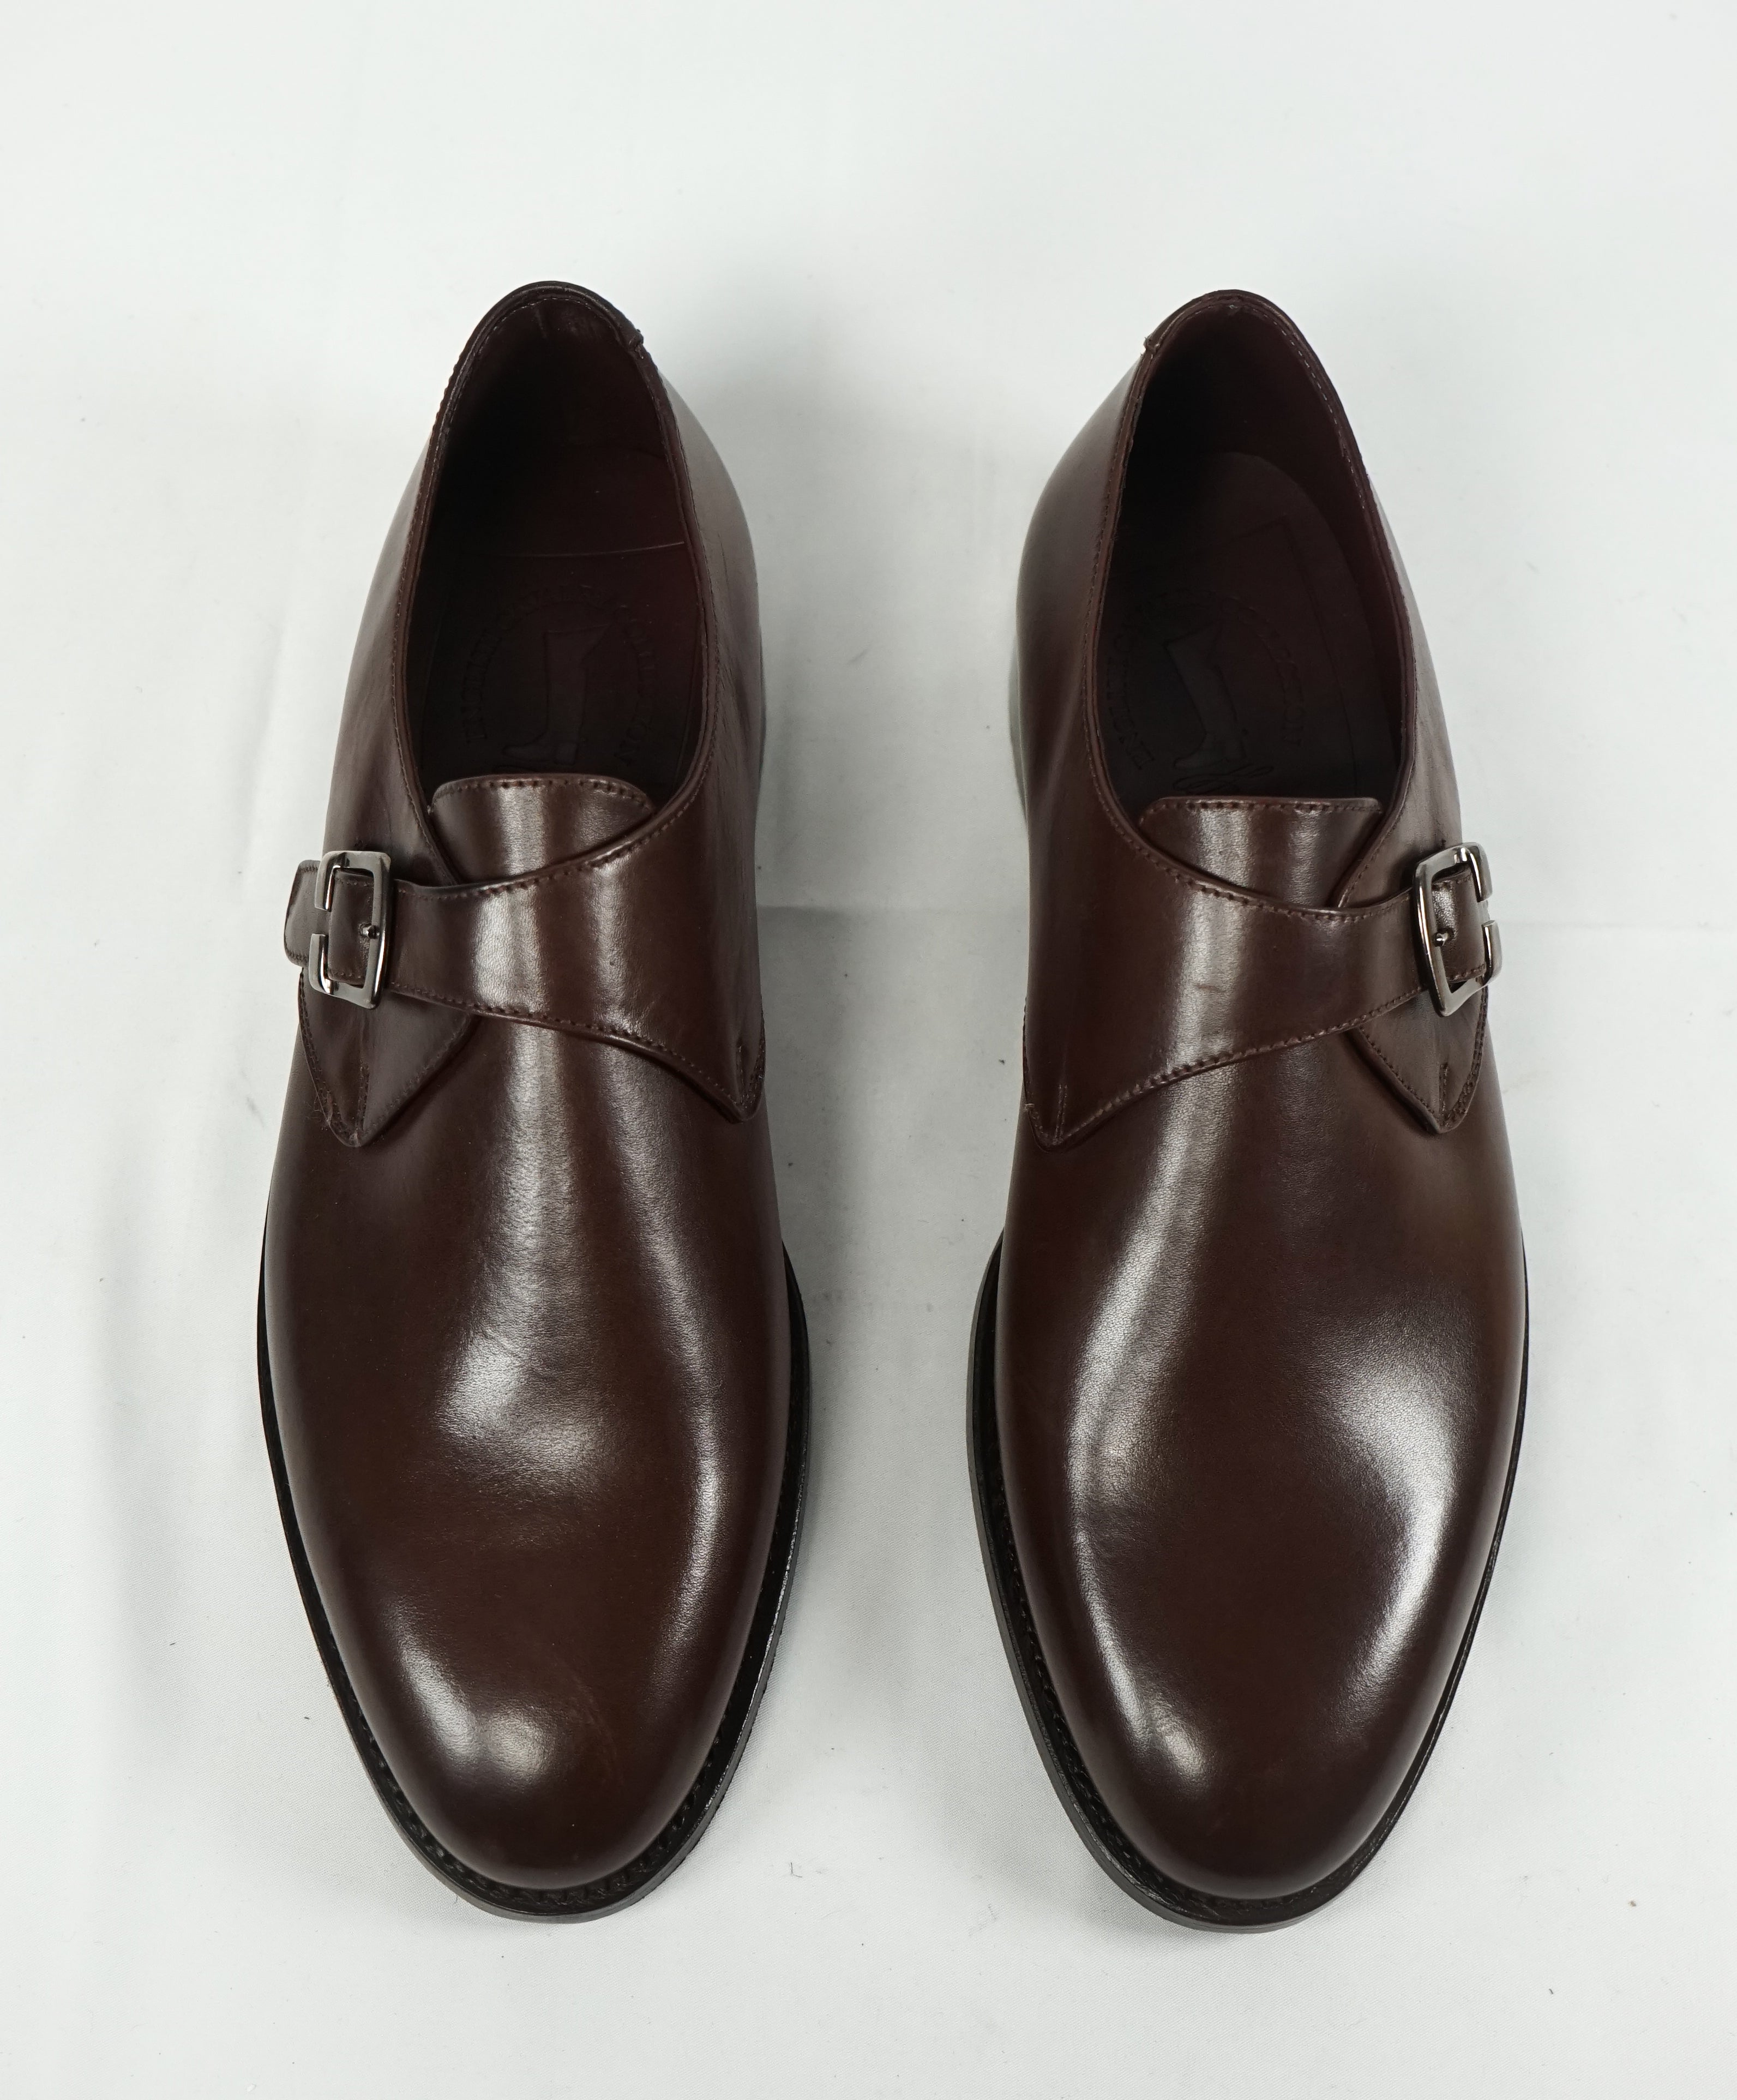 NETTLETON - Brown Hand Made In England Single Monk Loafers - 9